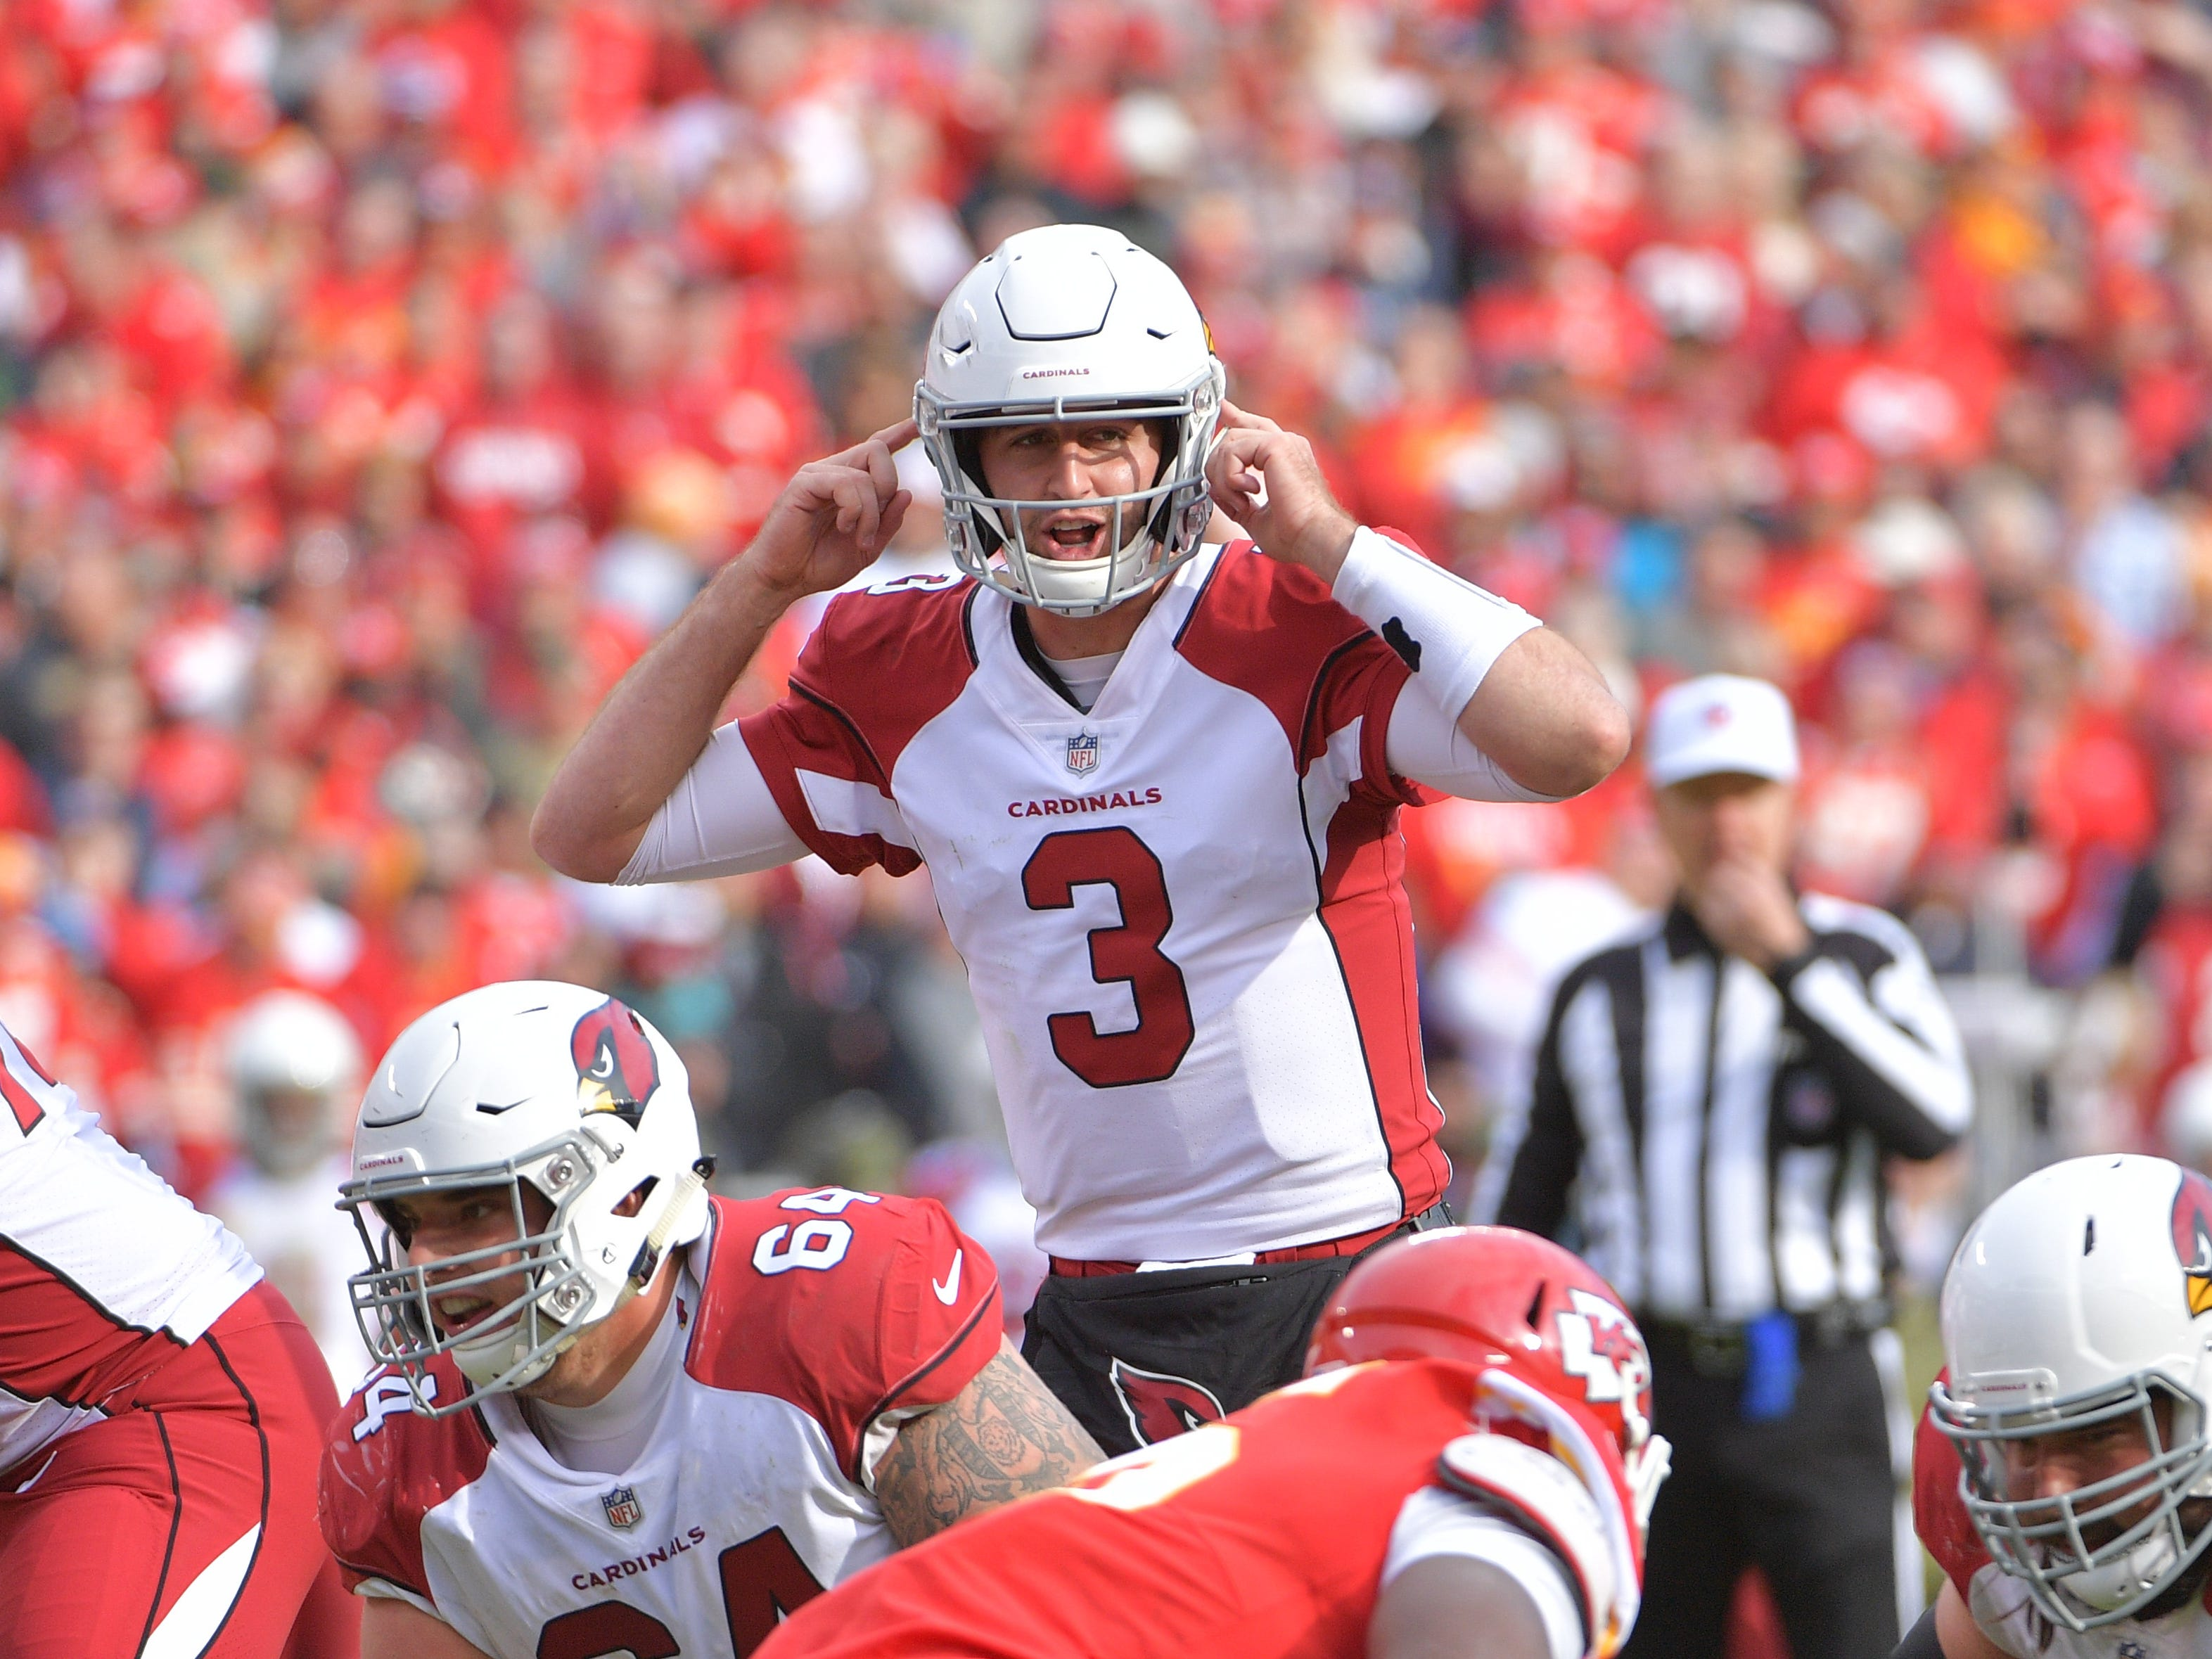 Nov 11, 2018; Kansas City, MO, USA; Arizona Cardinals quarterback Josh Rosen (3) motions on the line of scrimmage during the second half against the Kansas City Chiefs at Arrowhead Stadium. The Chiefs won 26-14. Mandatory Credit: Denny Medley-USA TODAY Sports